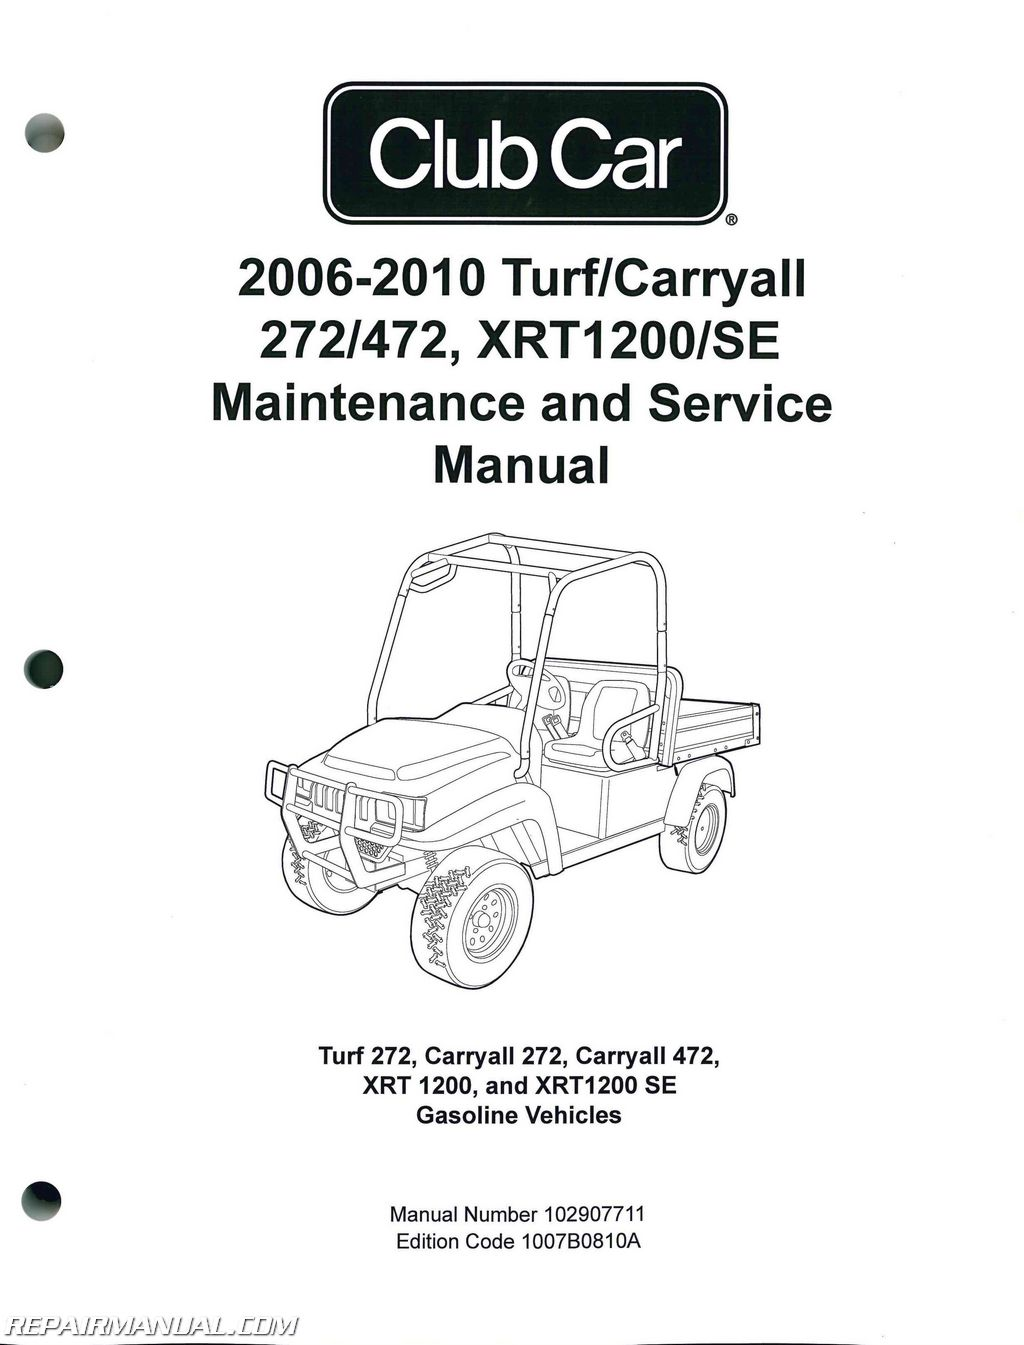 2006 Club Car Parts Diagram Wiring Diagrams Mark